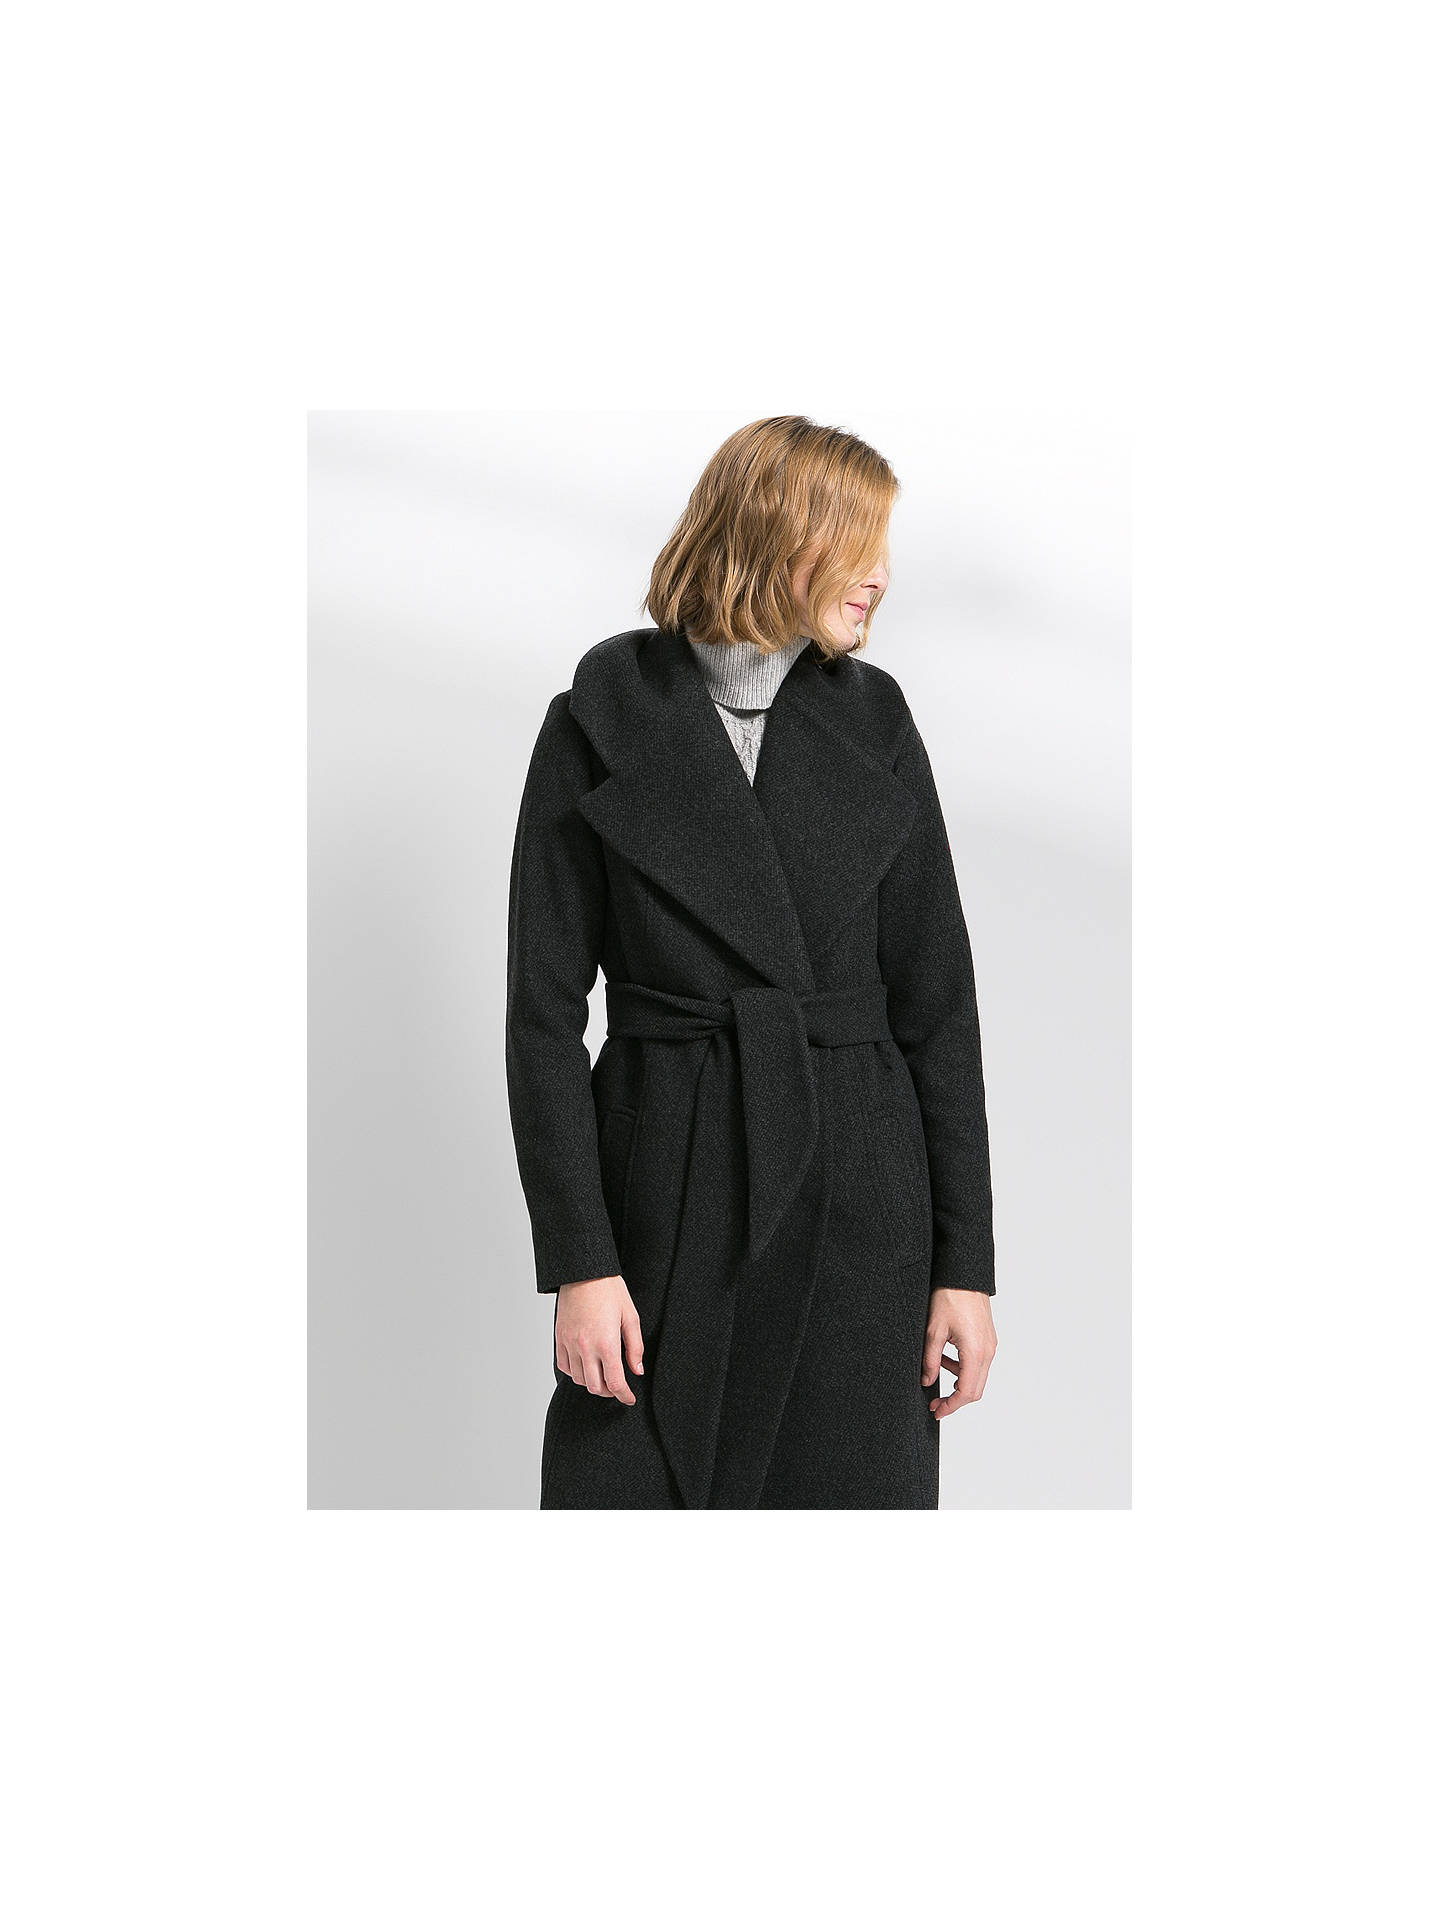 Belted Wool Coat from Mango on 21 Buttons